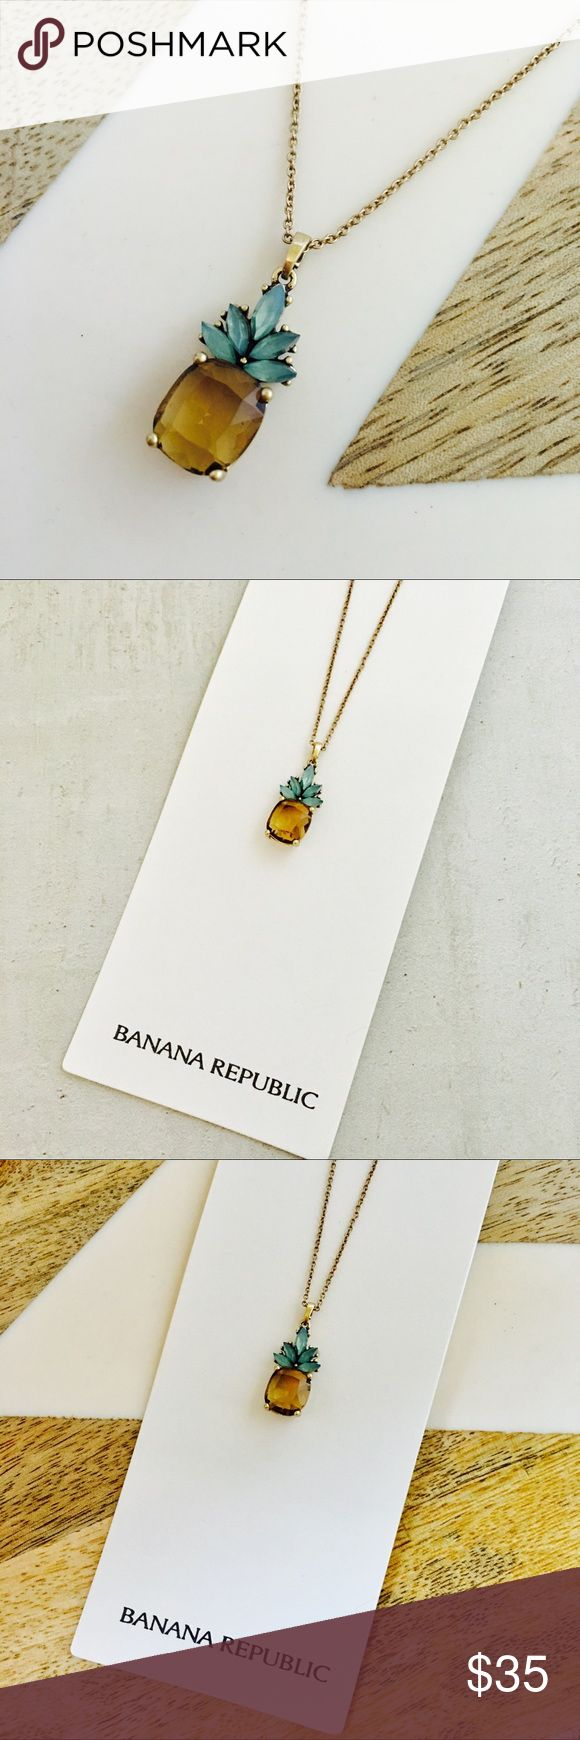 """Banana Republic Pineapple Jewel Necklace Pineapple Jewel Necklace - beautiful classic style with a trendy twist of Pineapple! Dainty chain with big style, amber and green colored stones on a gold setting. * 16"""" length chain with 2"""" extender. * Base"""